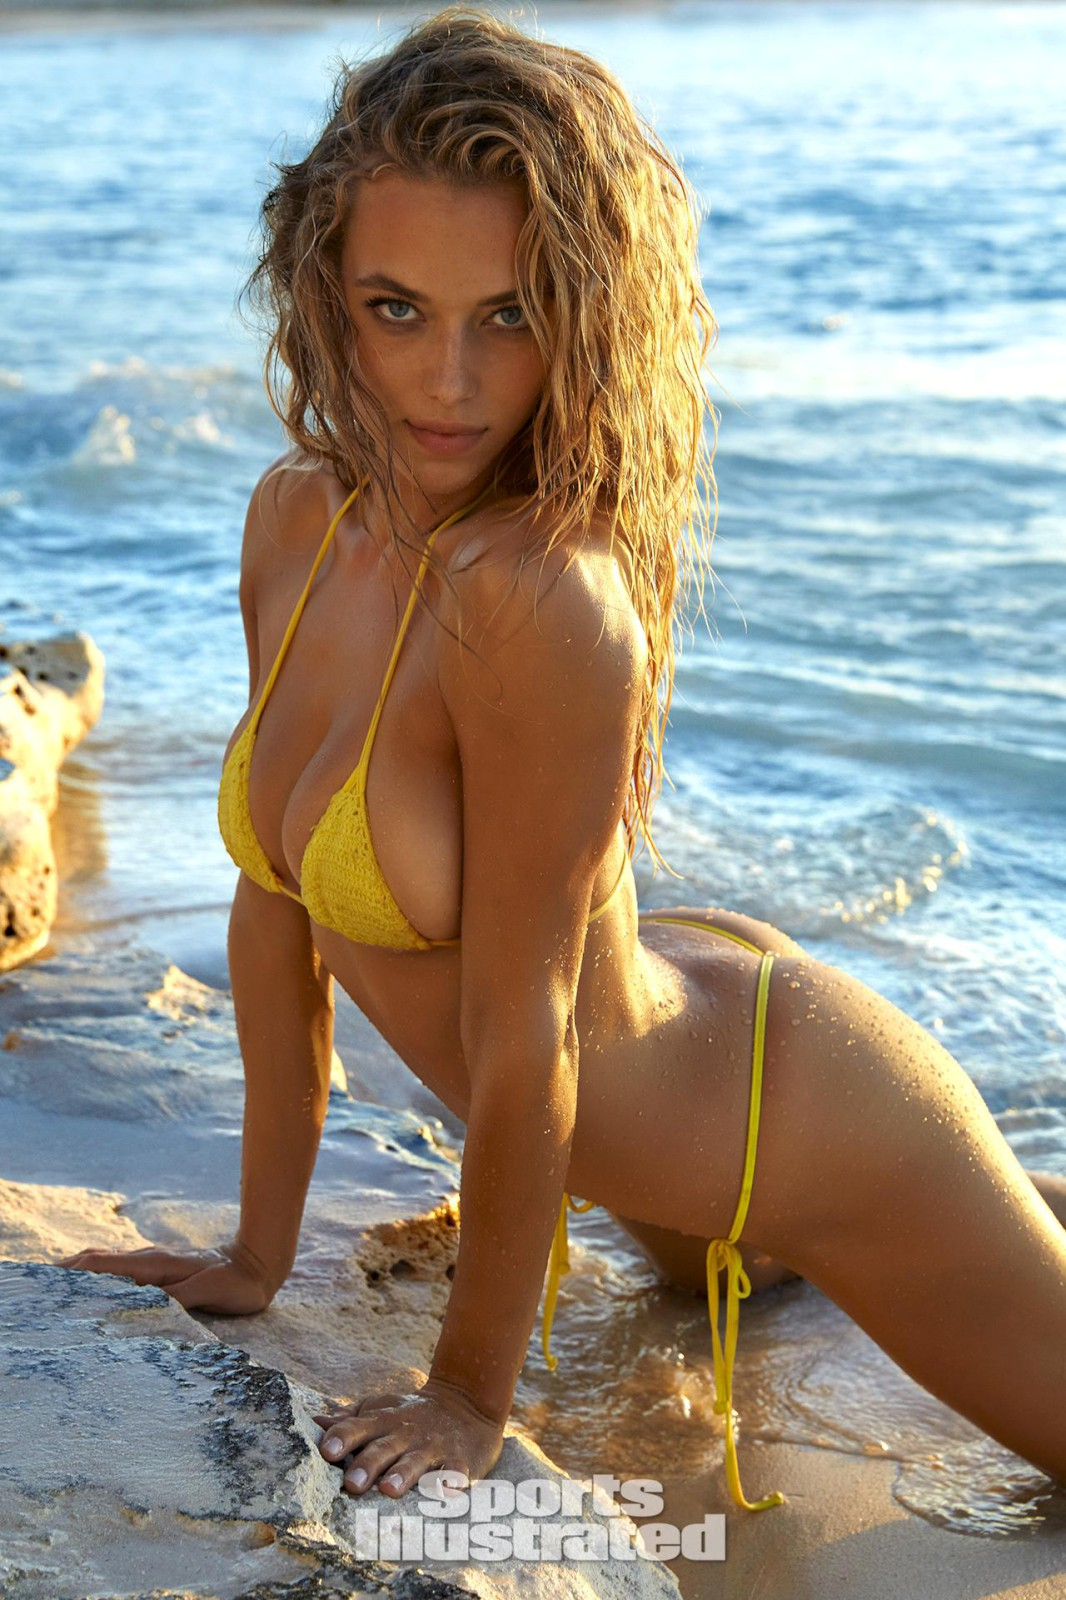 ... × 1600 Hannah Ferguson – Sports Illustrated Swimsuit Issue 2016